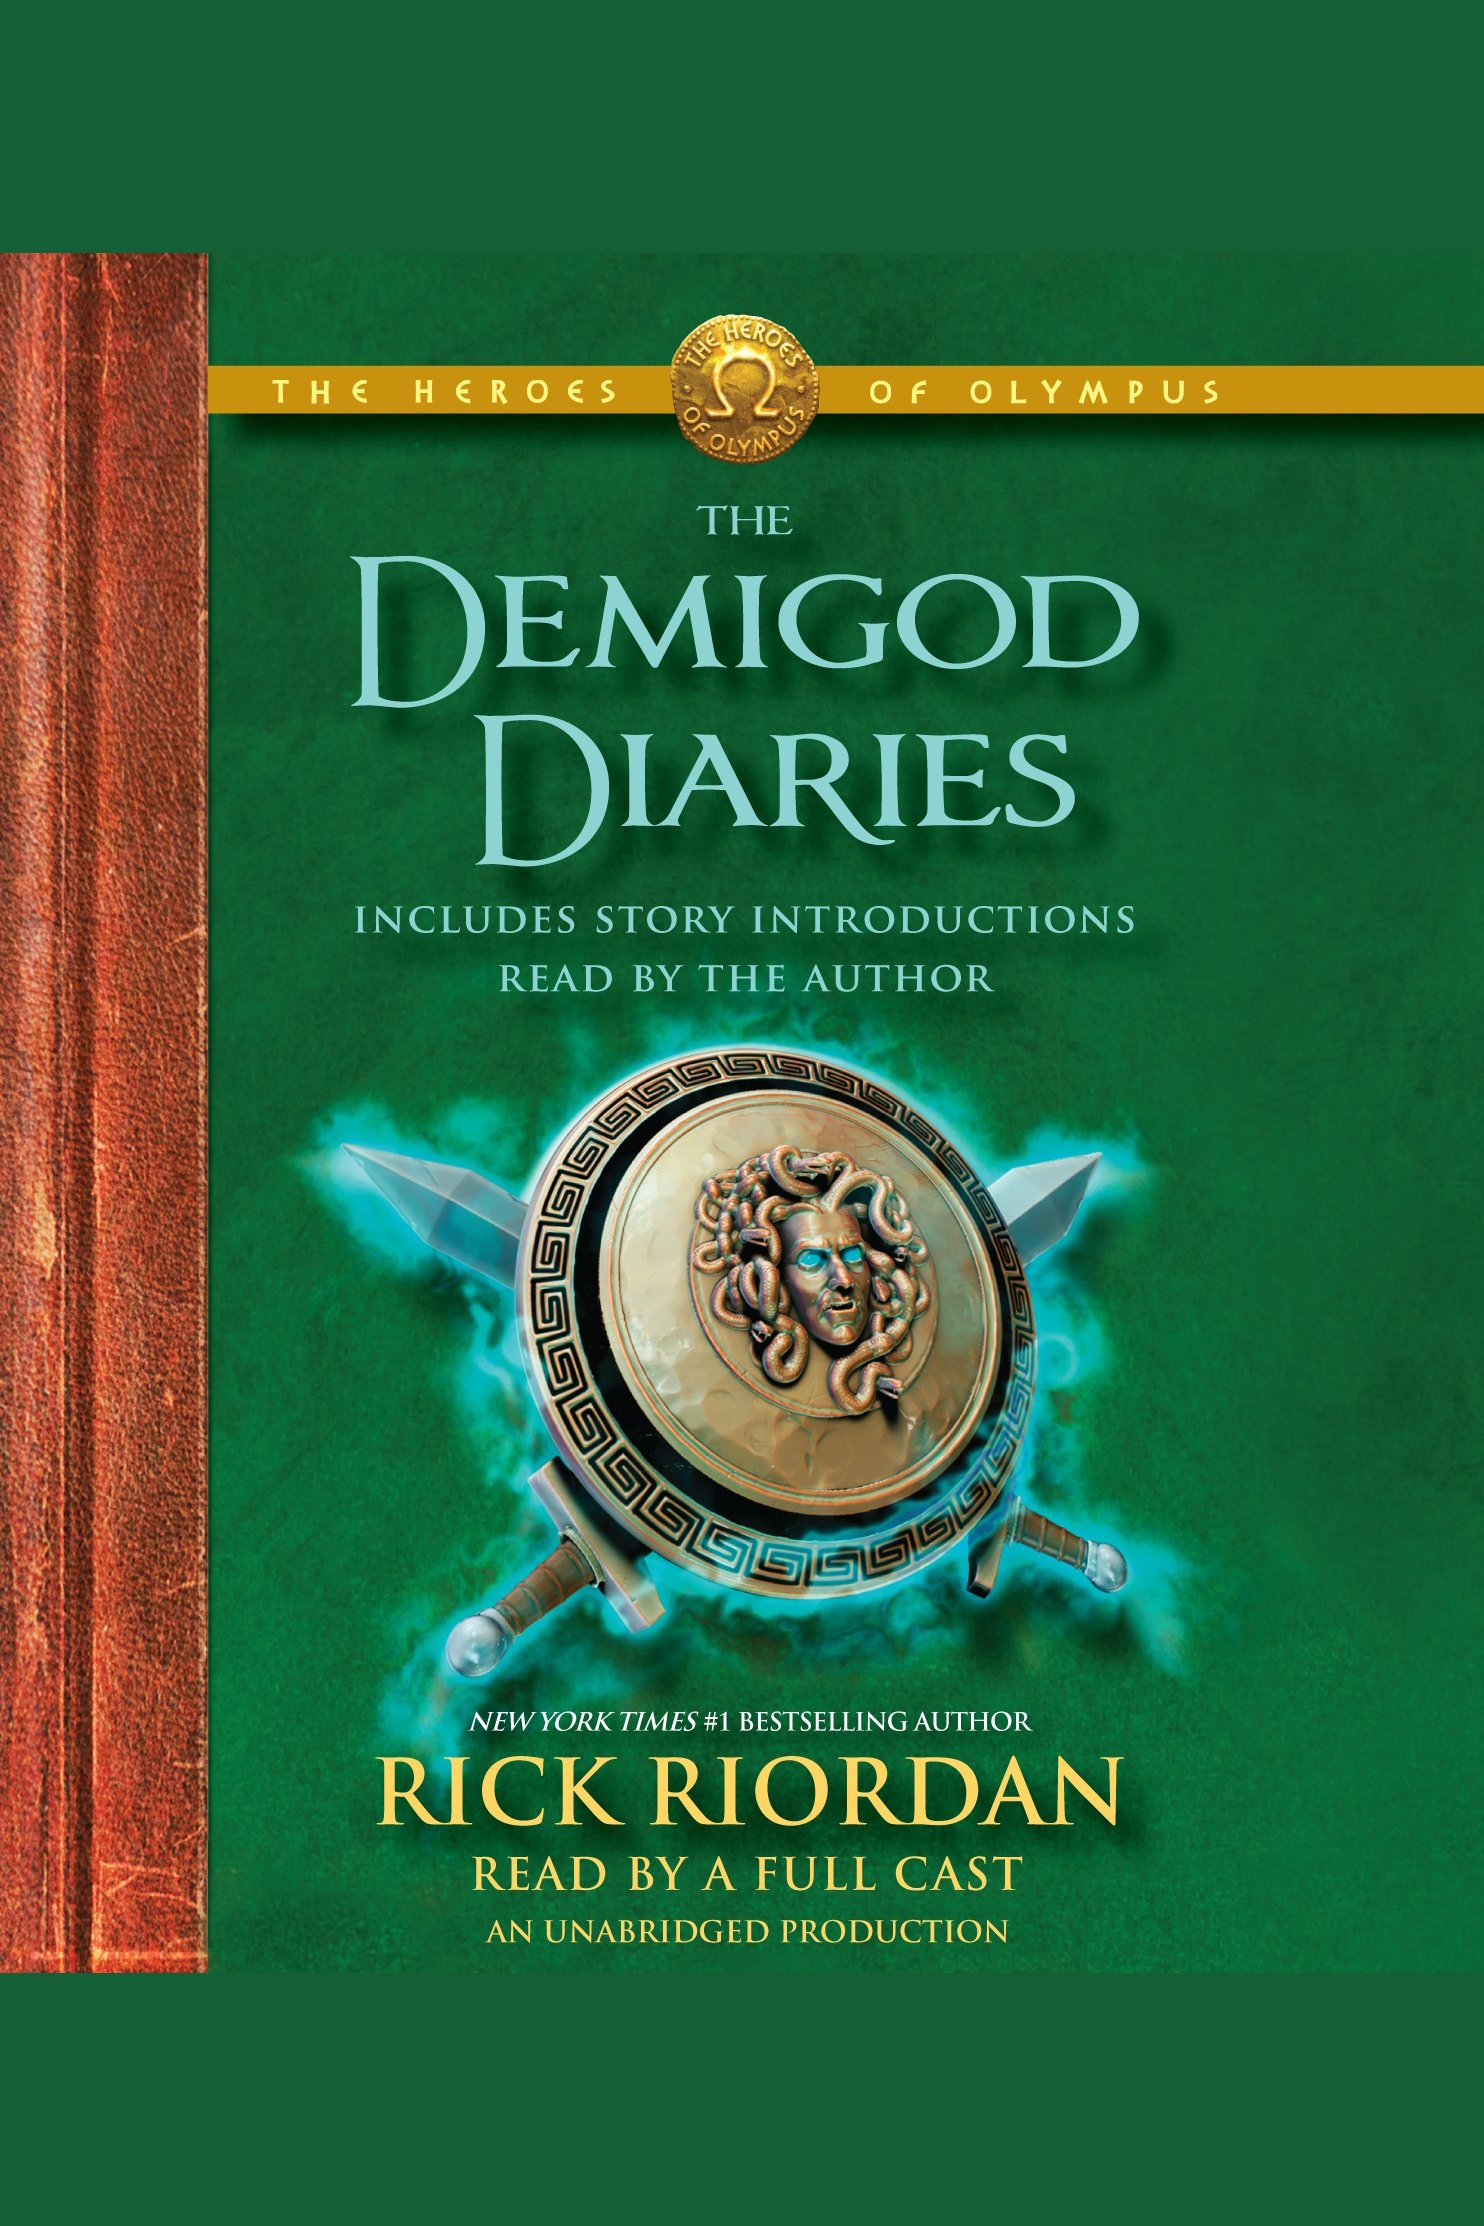 The demigod diaries cover image